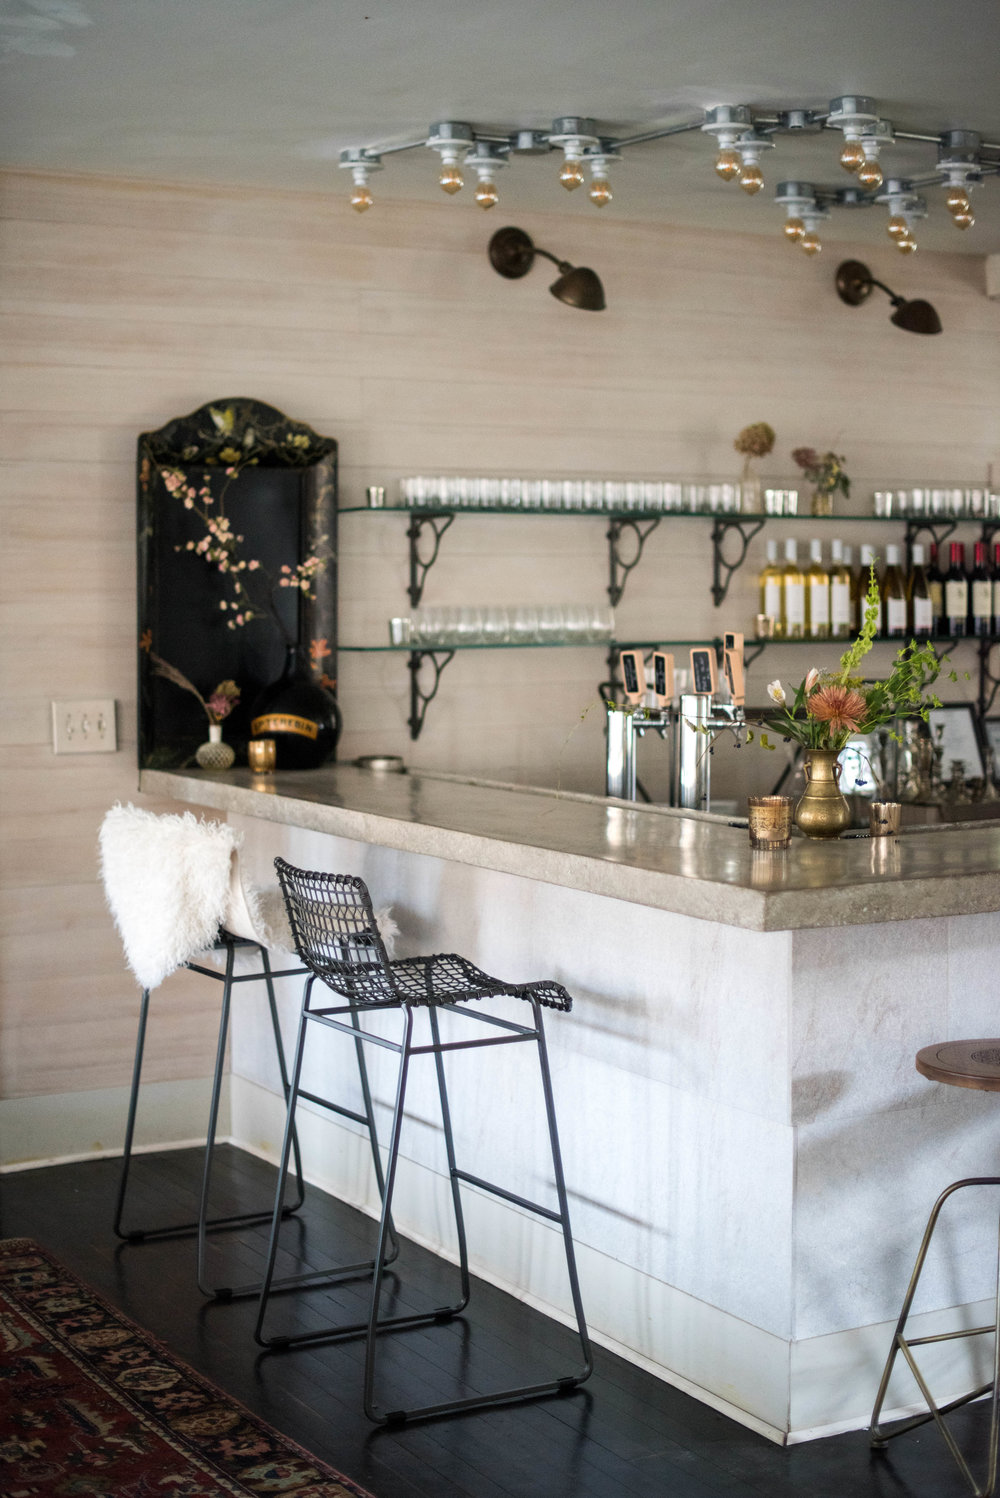 The handmade concrete bar at Foxfire Mountain House, Image: Sweet Root Village